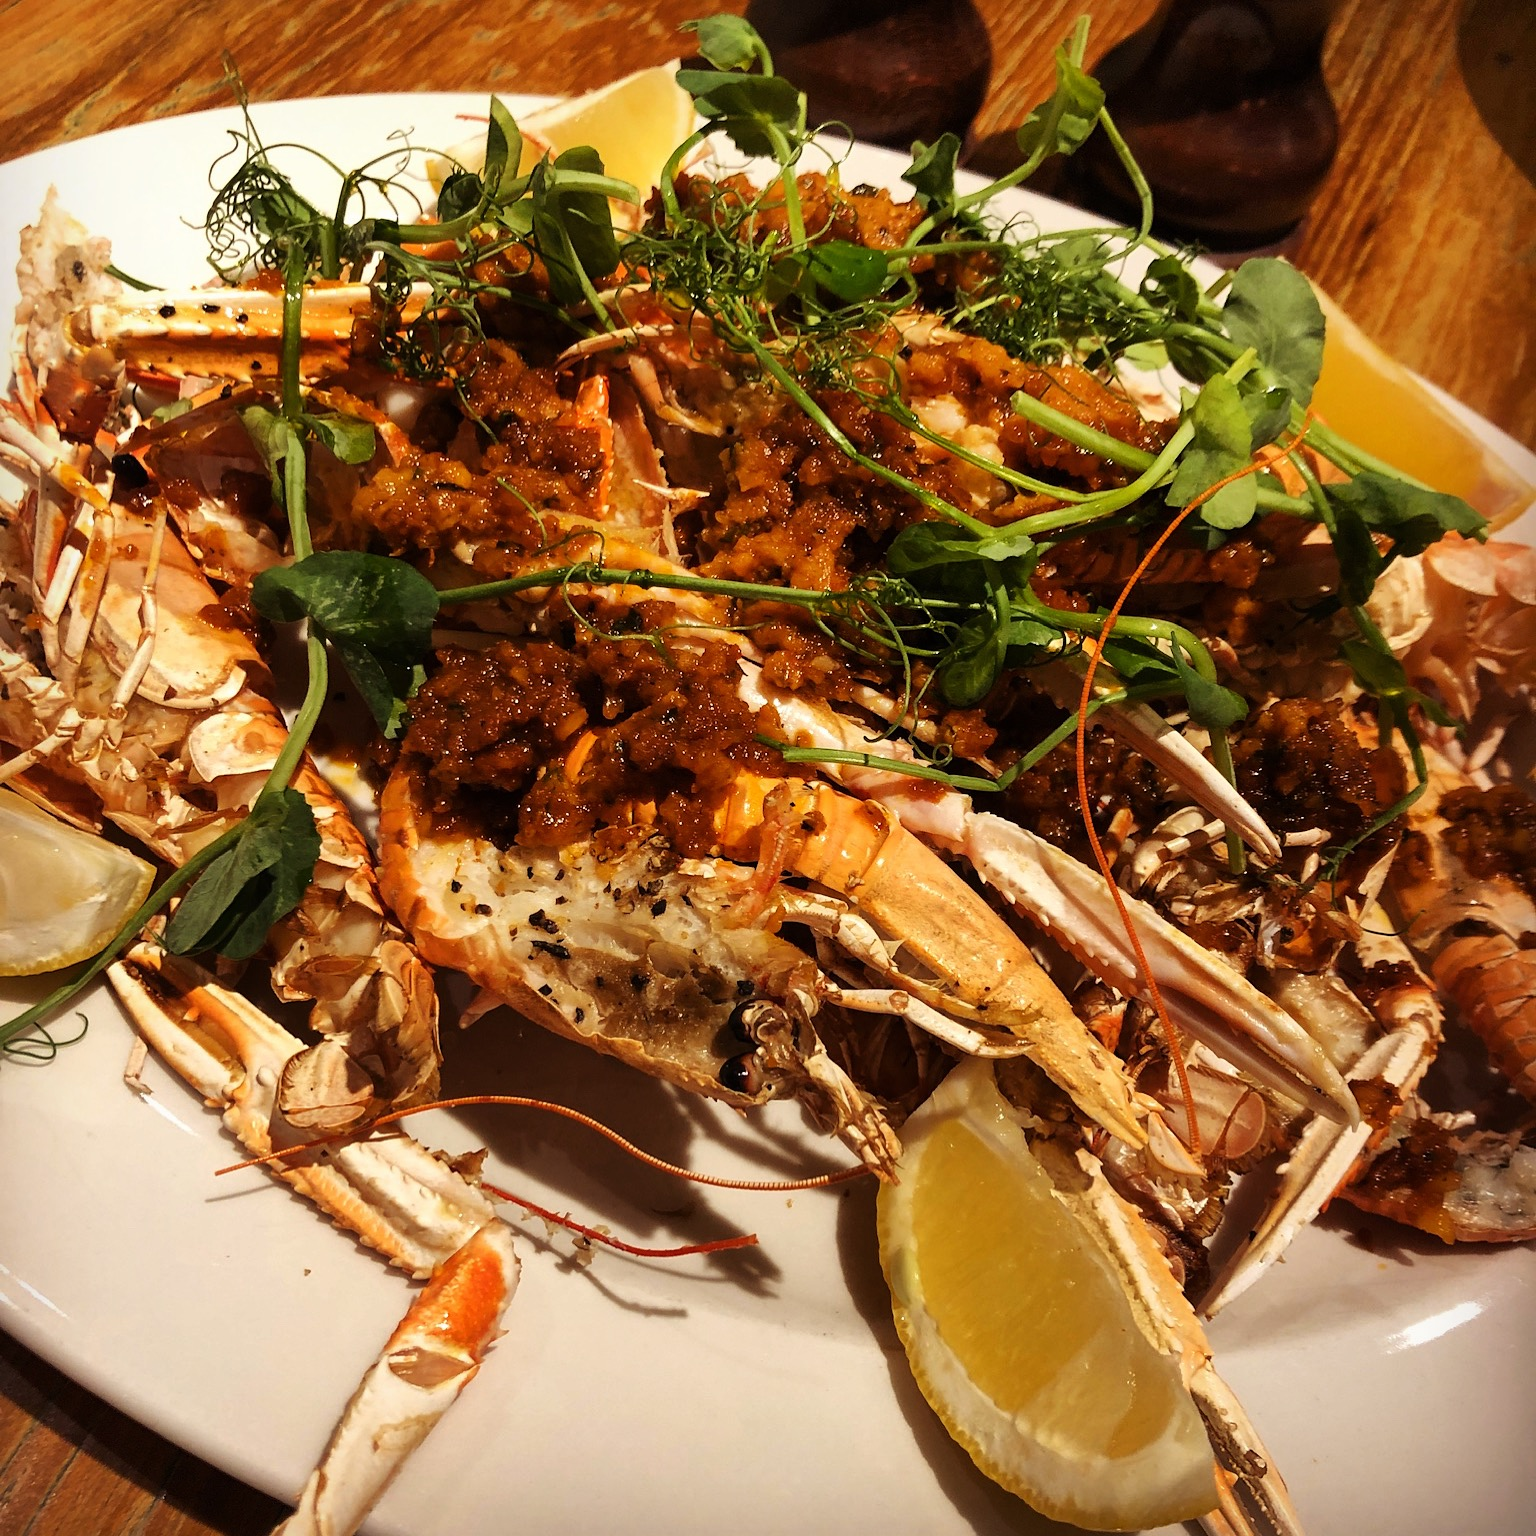 GRILLED SCOTTISH LANGOUSTINES (N) 29.95 with romesco sauce – sun-dried tomatoes, roast peppers, garlic, almonds